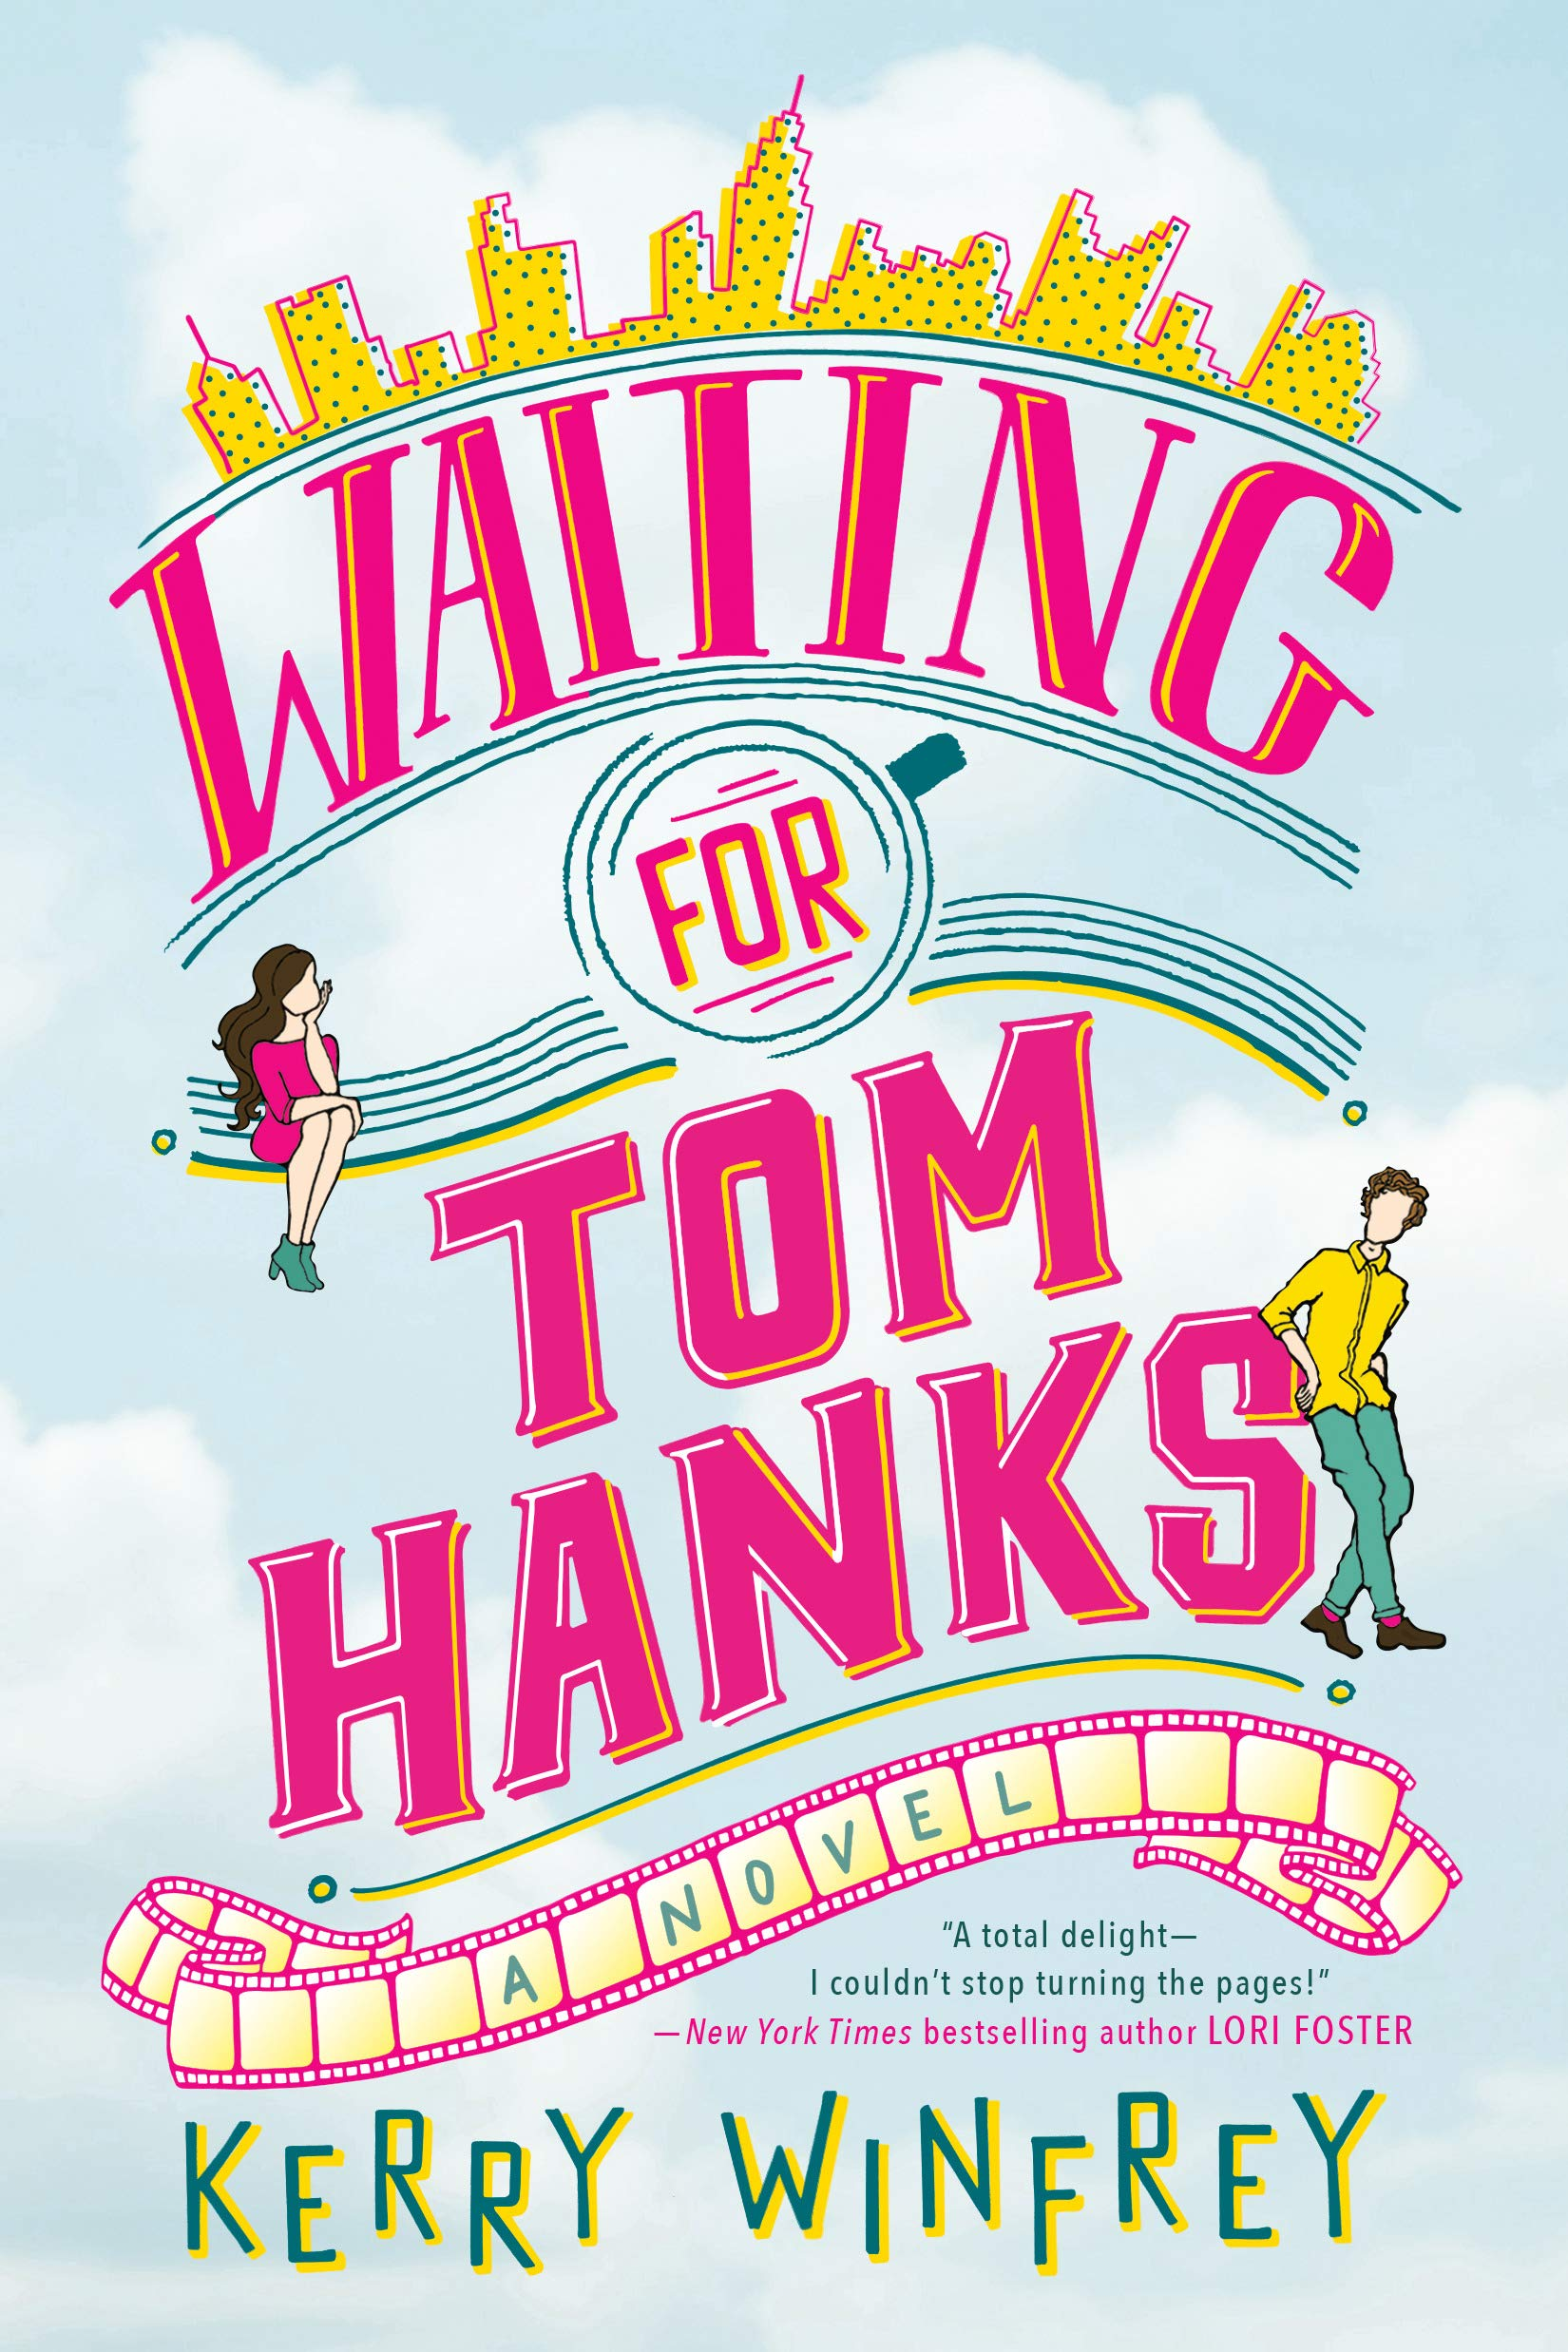 Waiting for Tom Hanks: Kerry Winfrey: 9781984804020: Amazon.